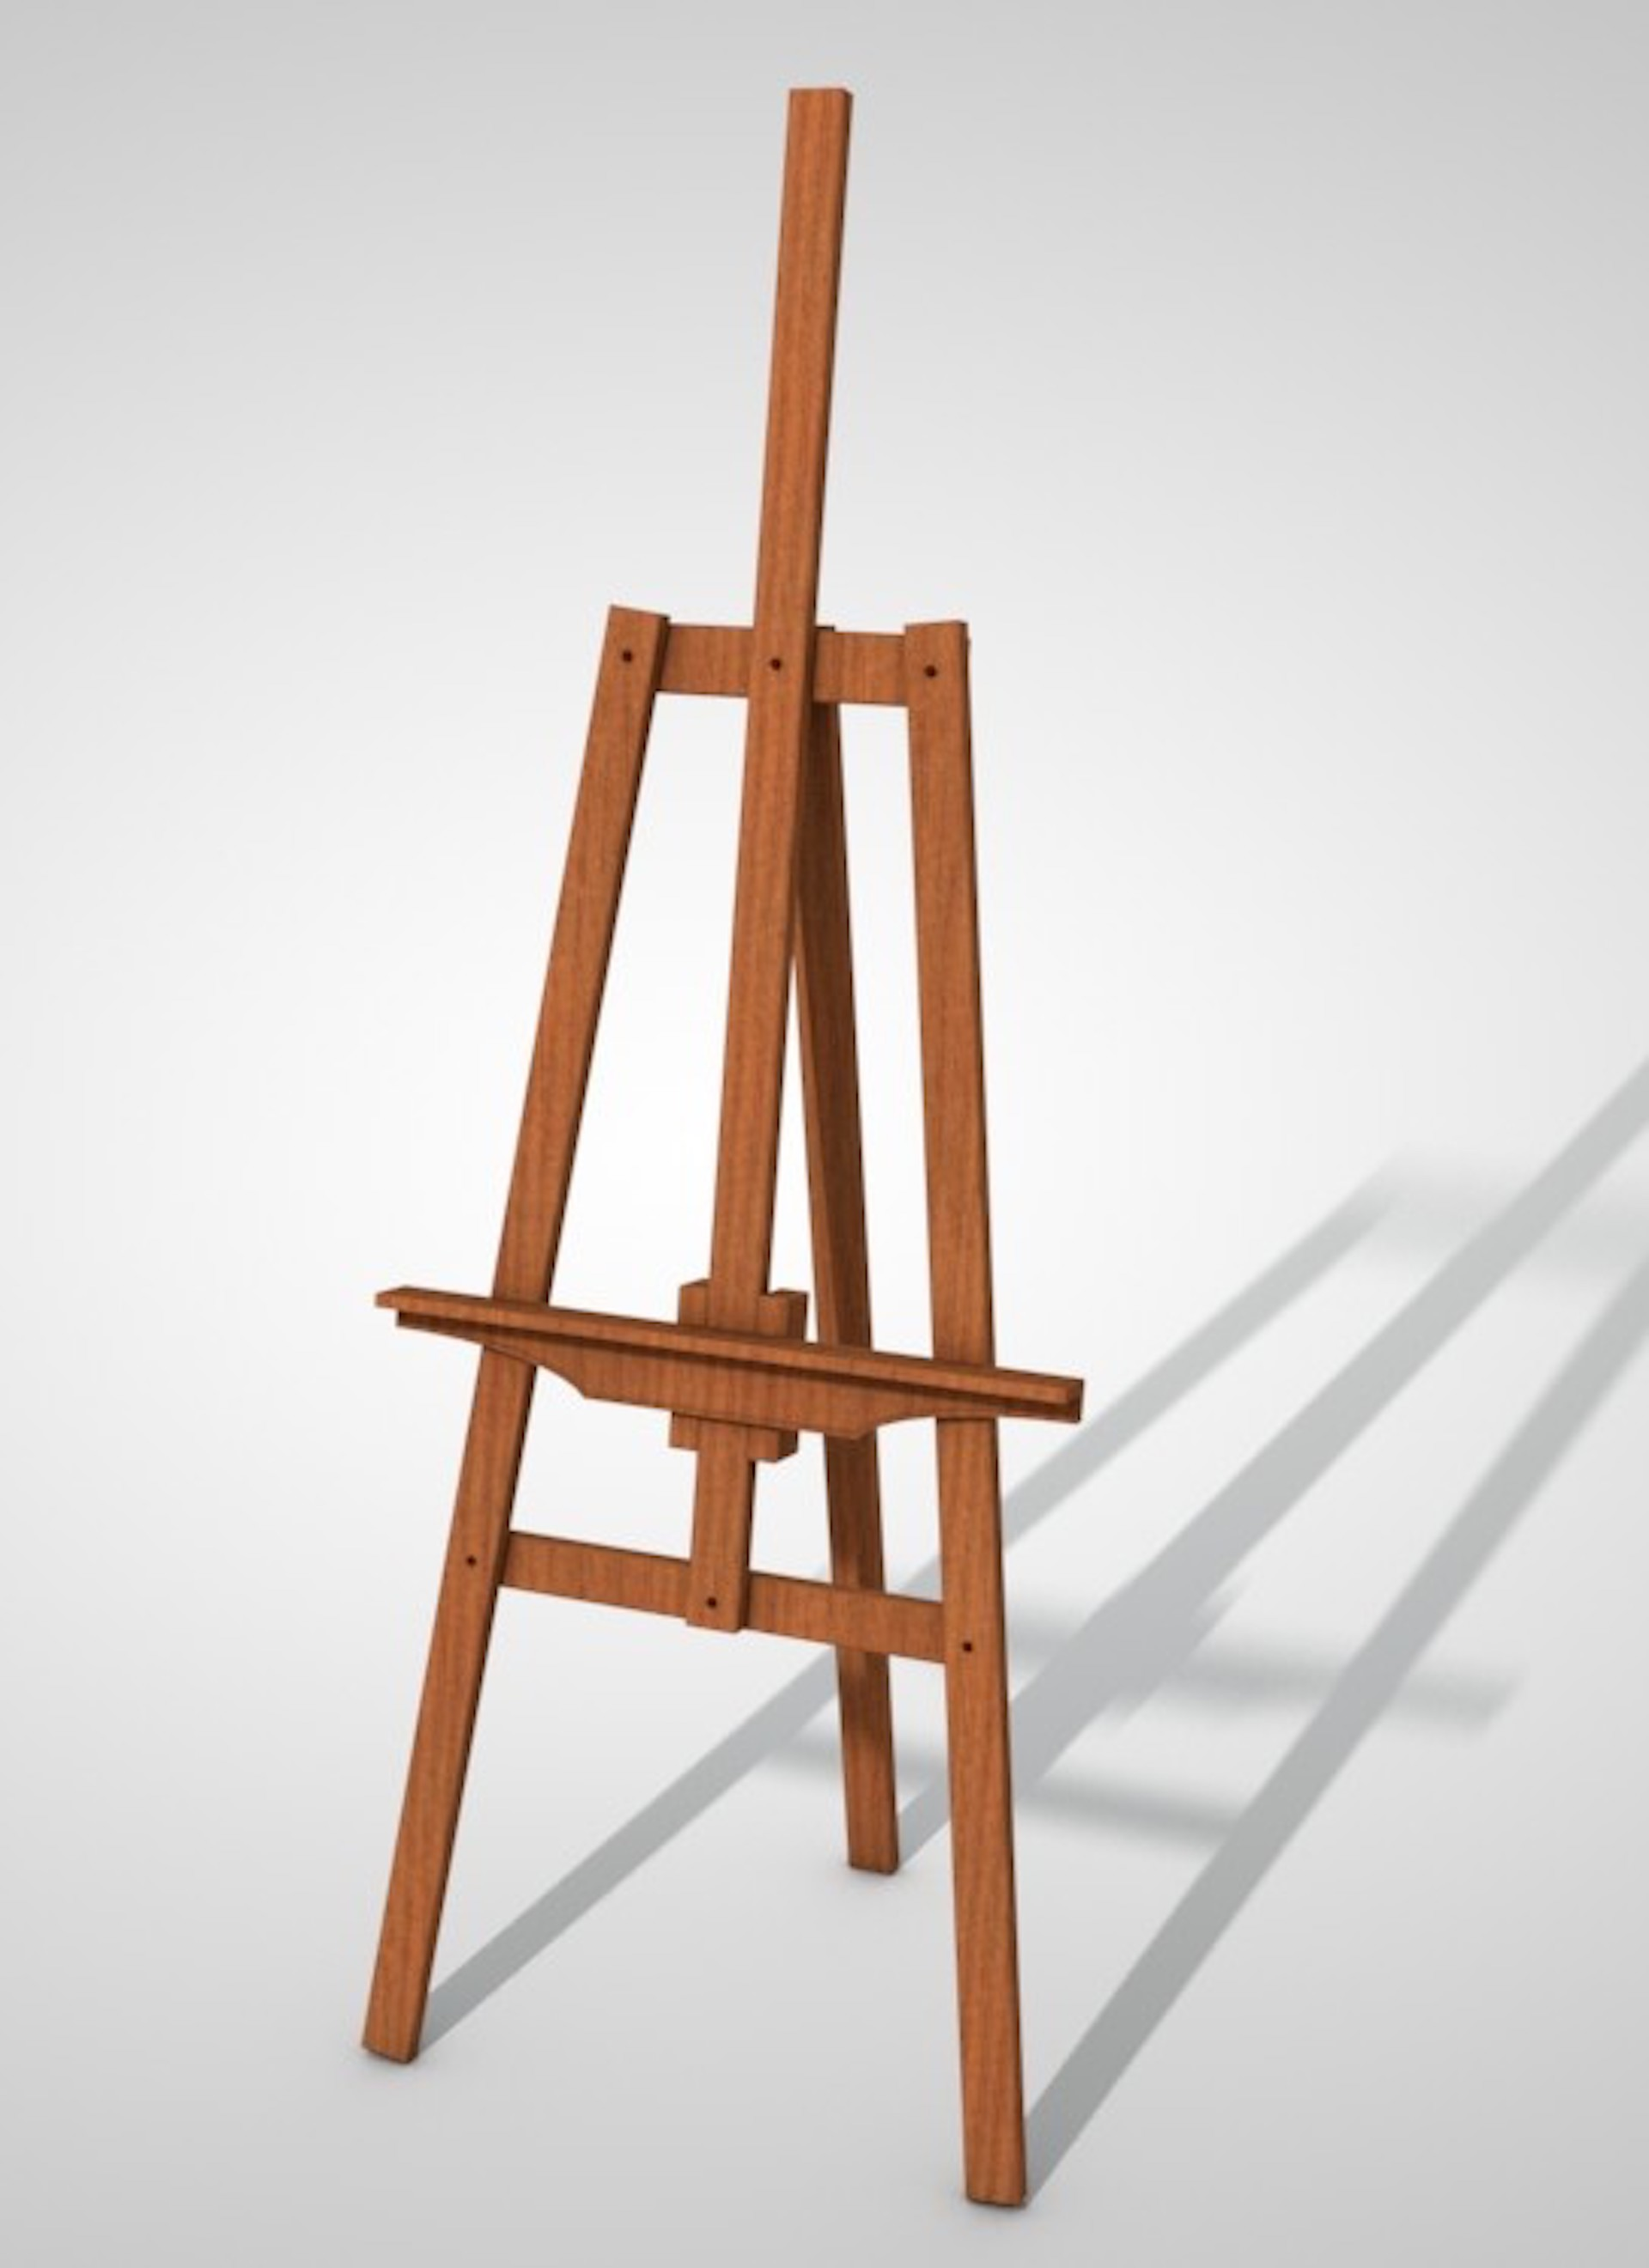 cavalletto pittura modelli download c4dzone